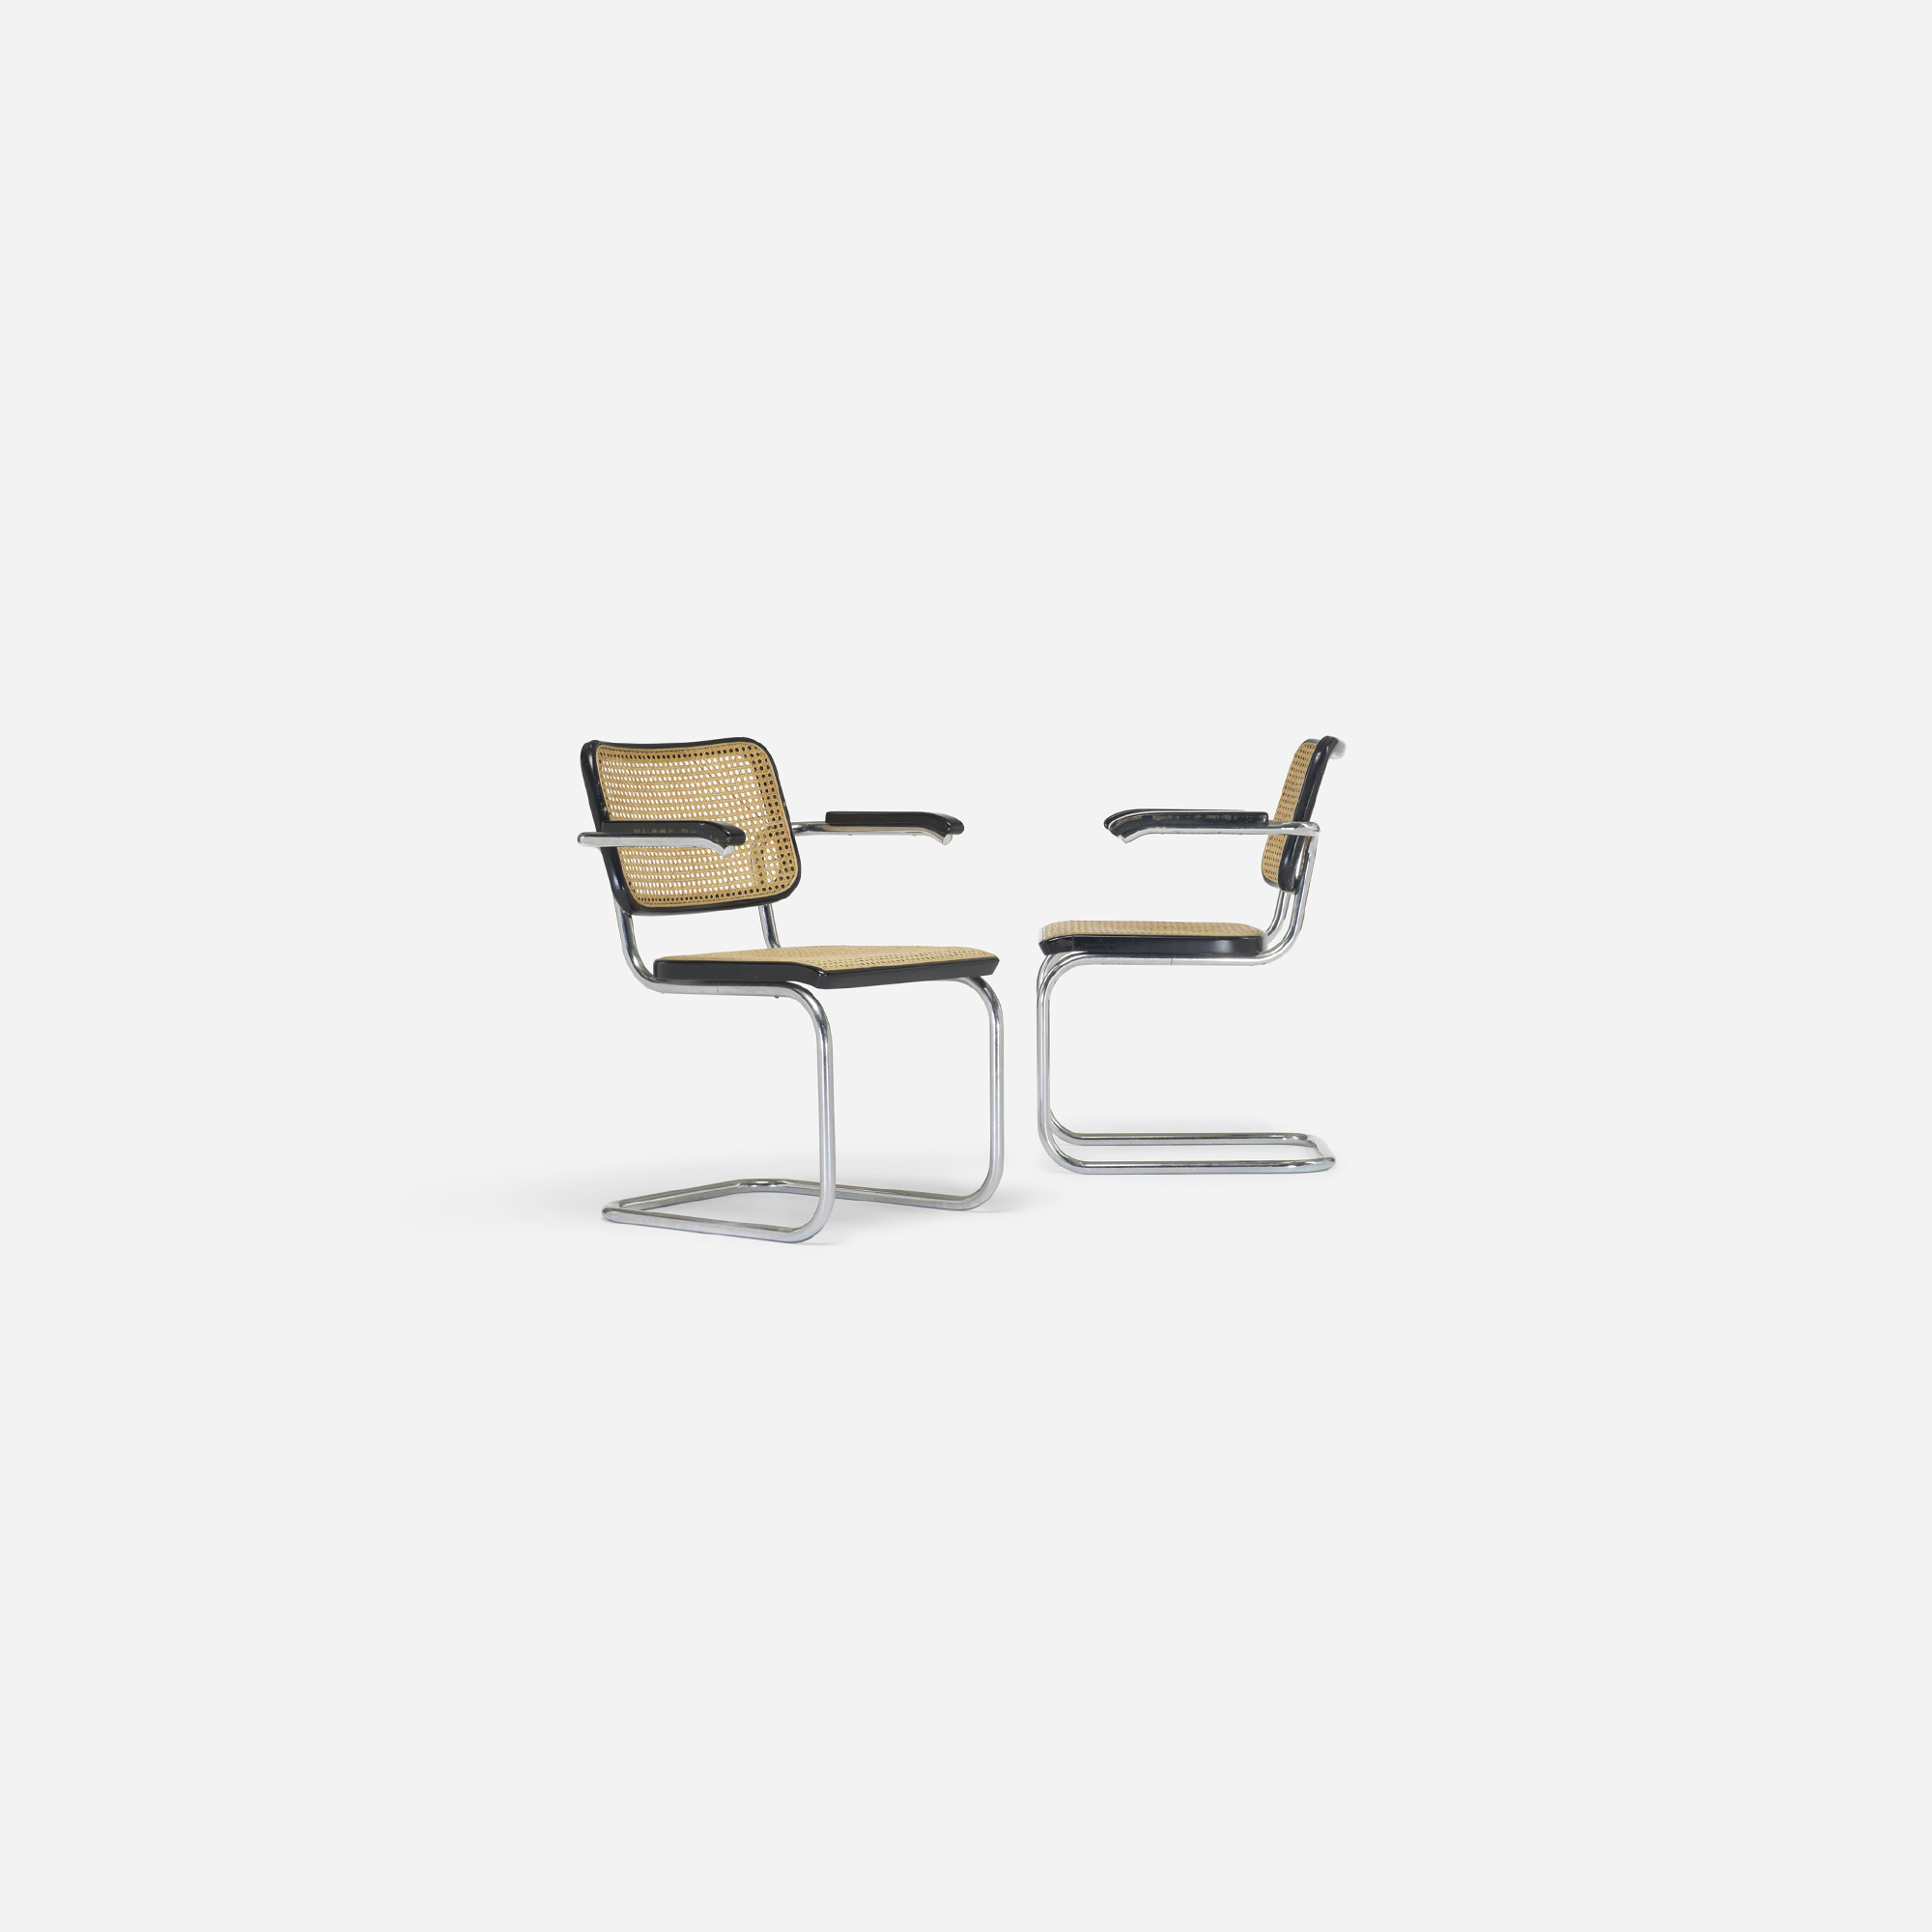 marcel breuer cesca chair with armrests bamboo folding 162 chairs pair mass modern 14 july 2012 2 of 6